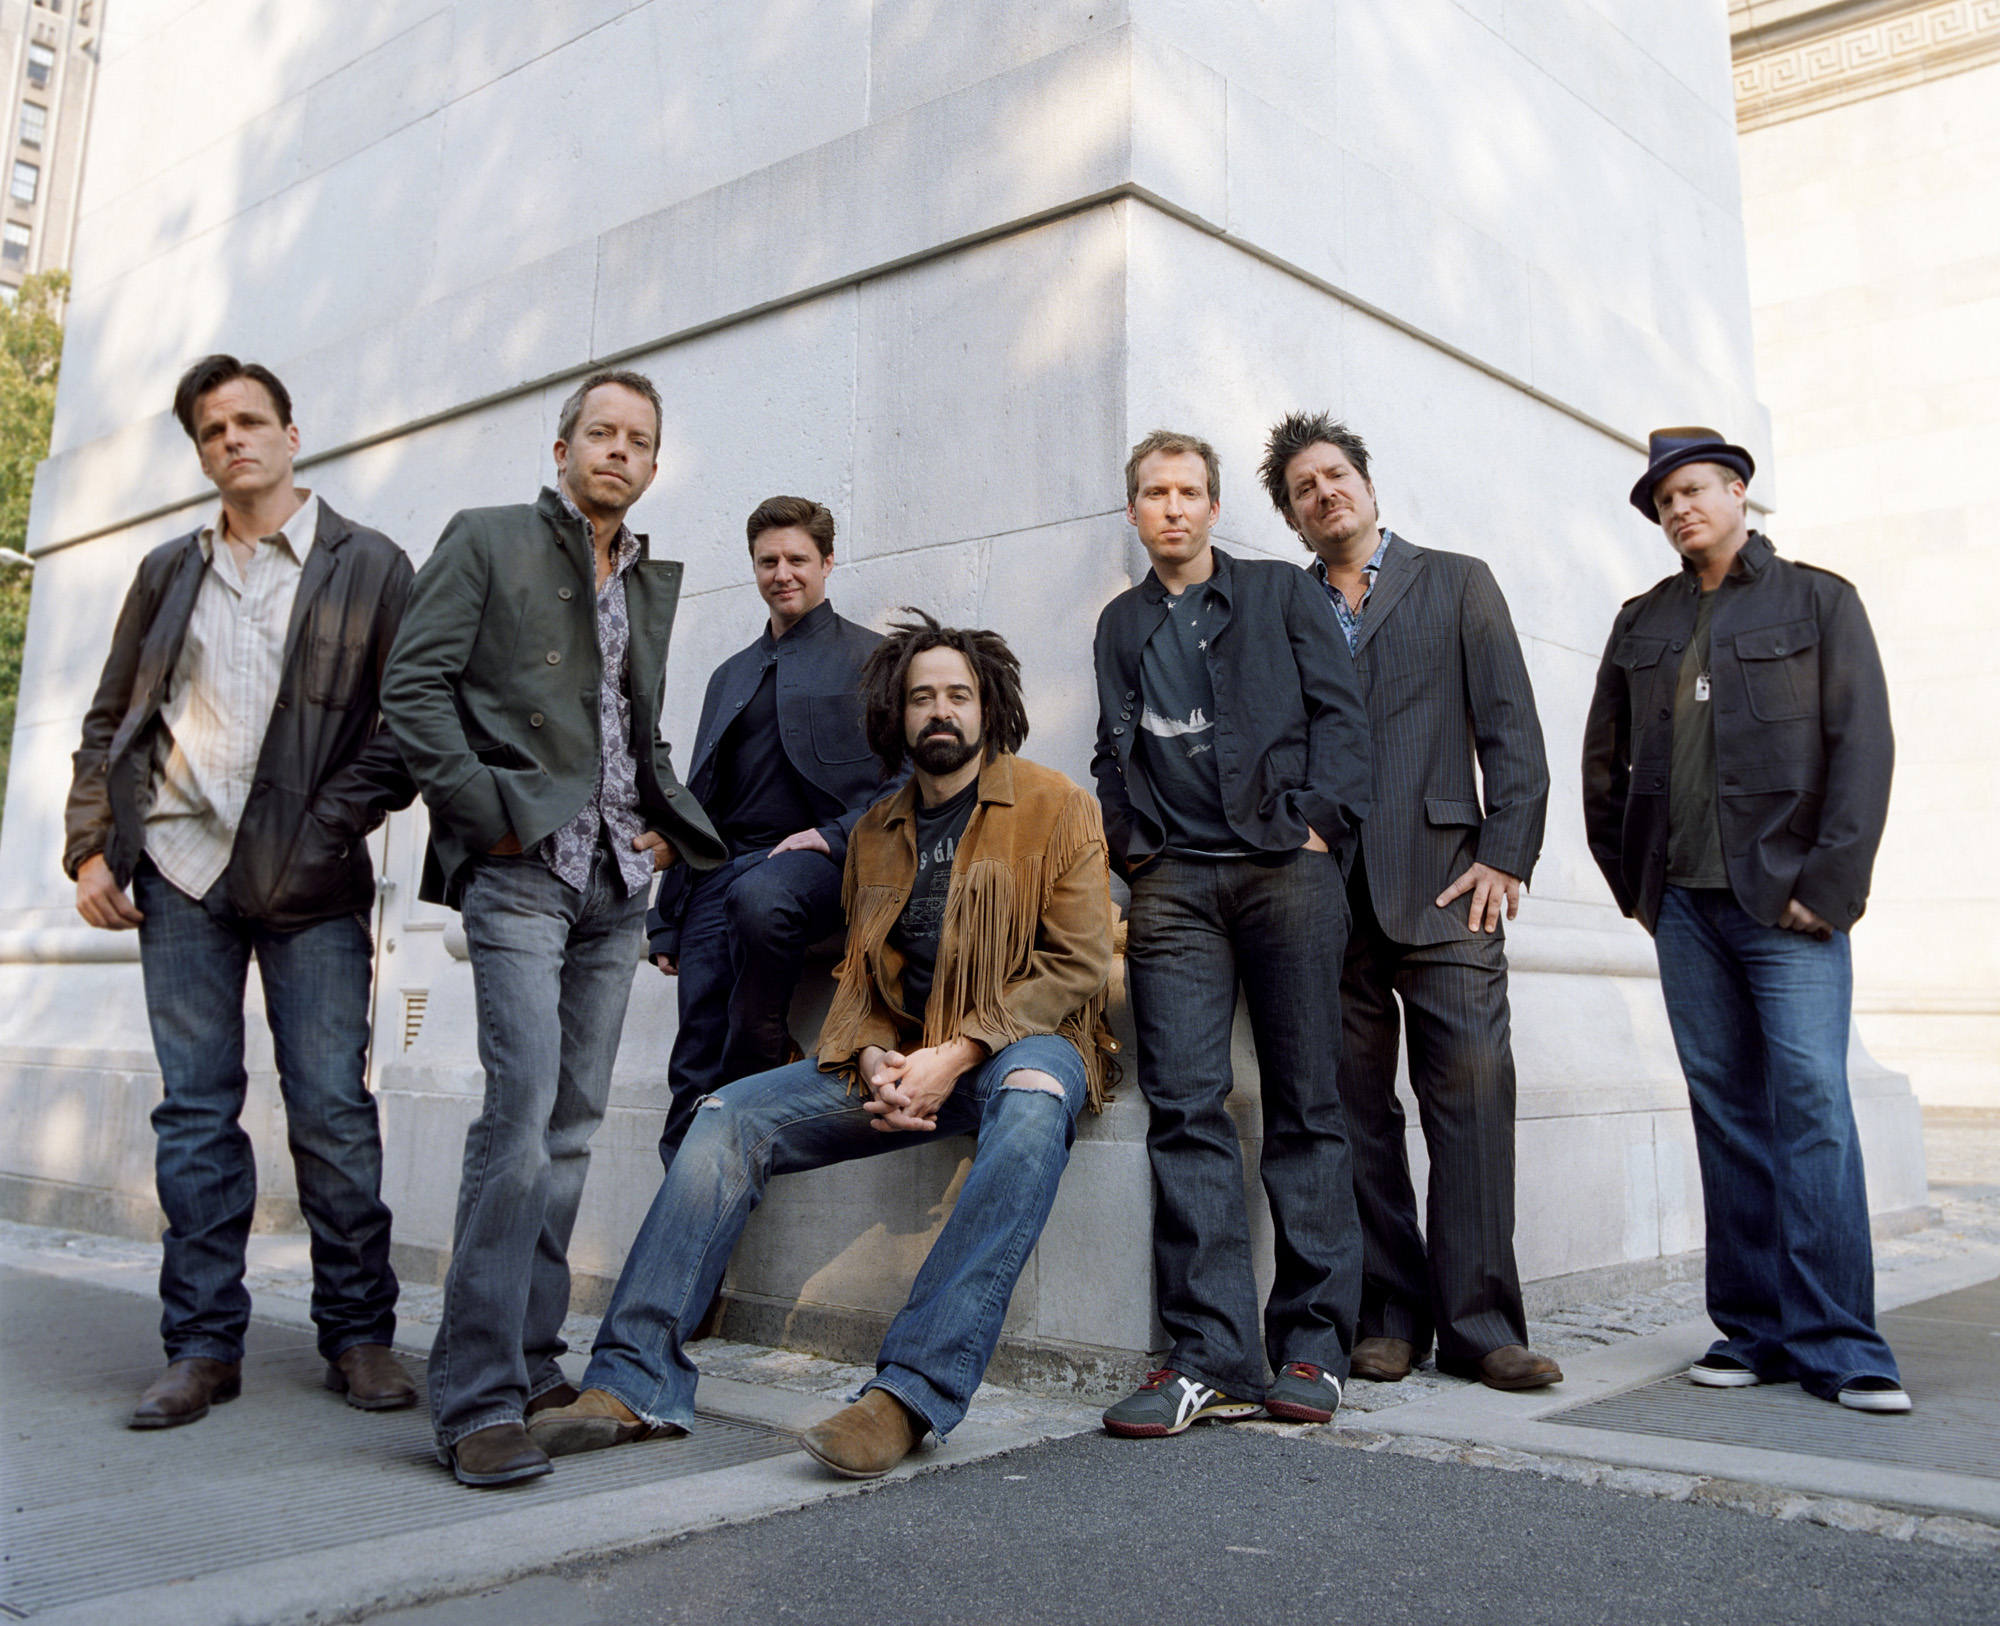 Multi platinum 90s rockers Counting Crows and Live play at Hersheypark Stadium on Aug 10